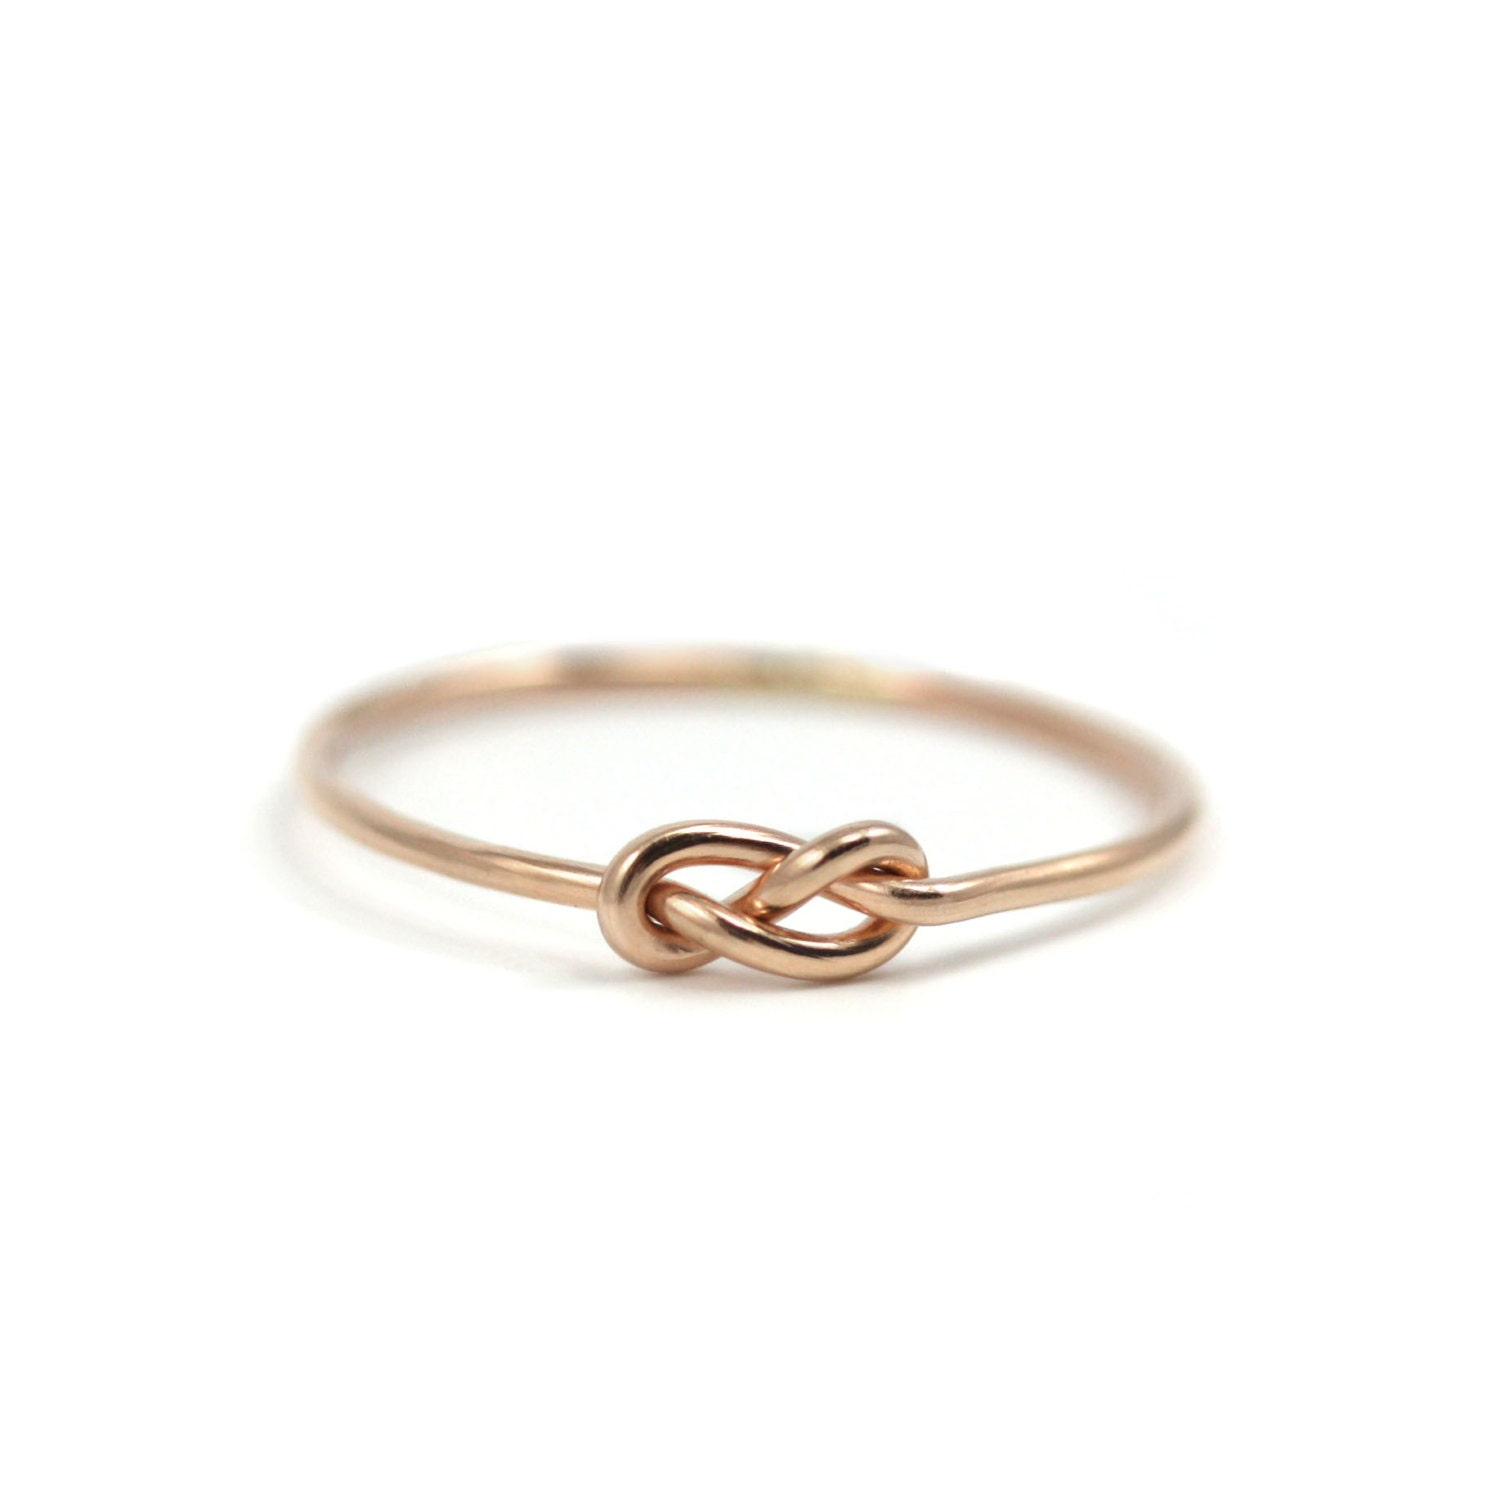 Favori Bague infini délicate rose Gold-Filled nœud infini rose or JU46